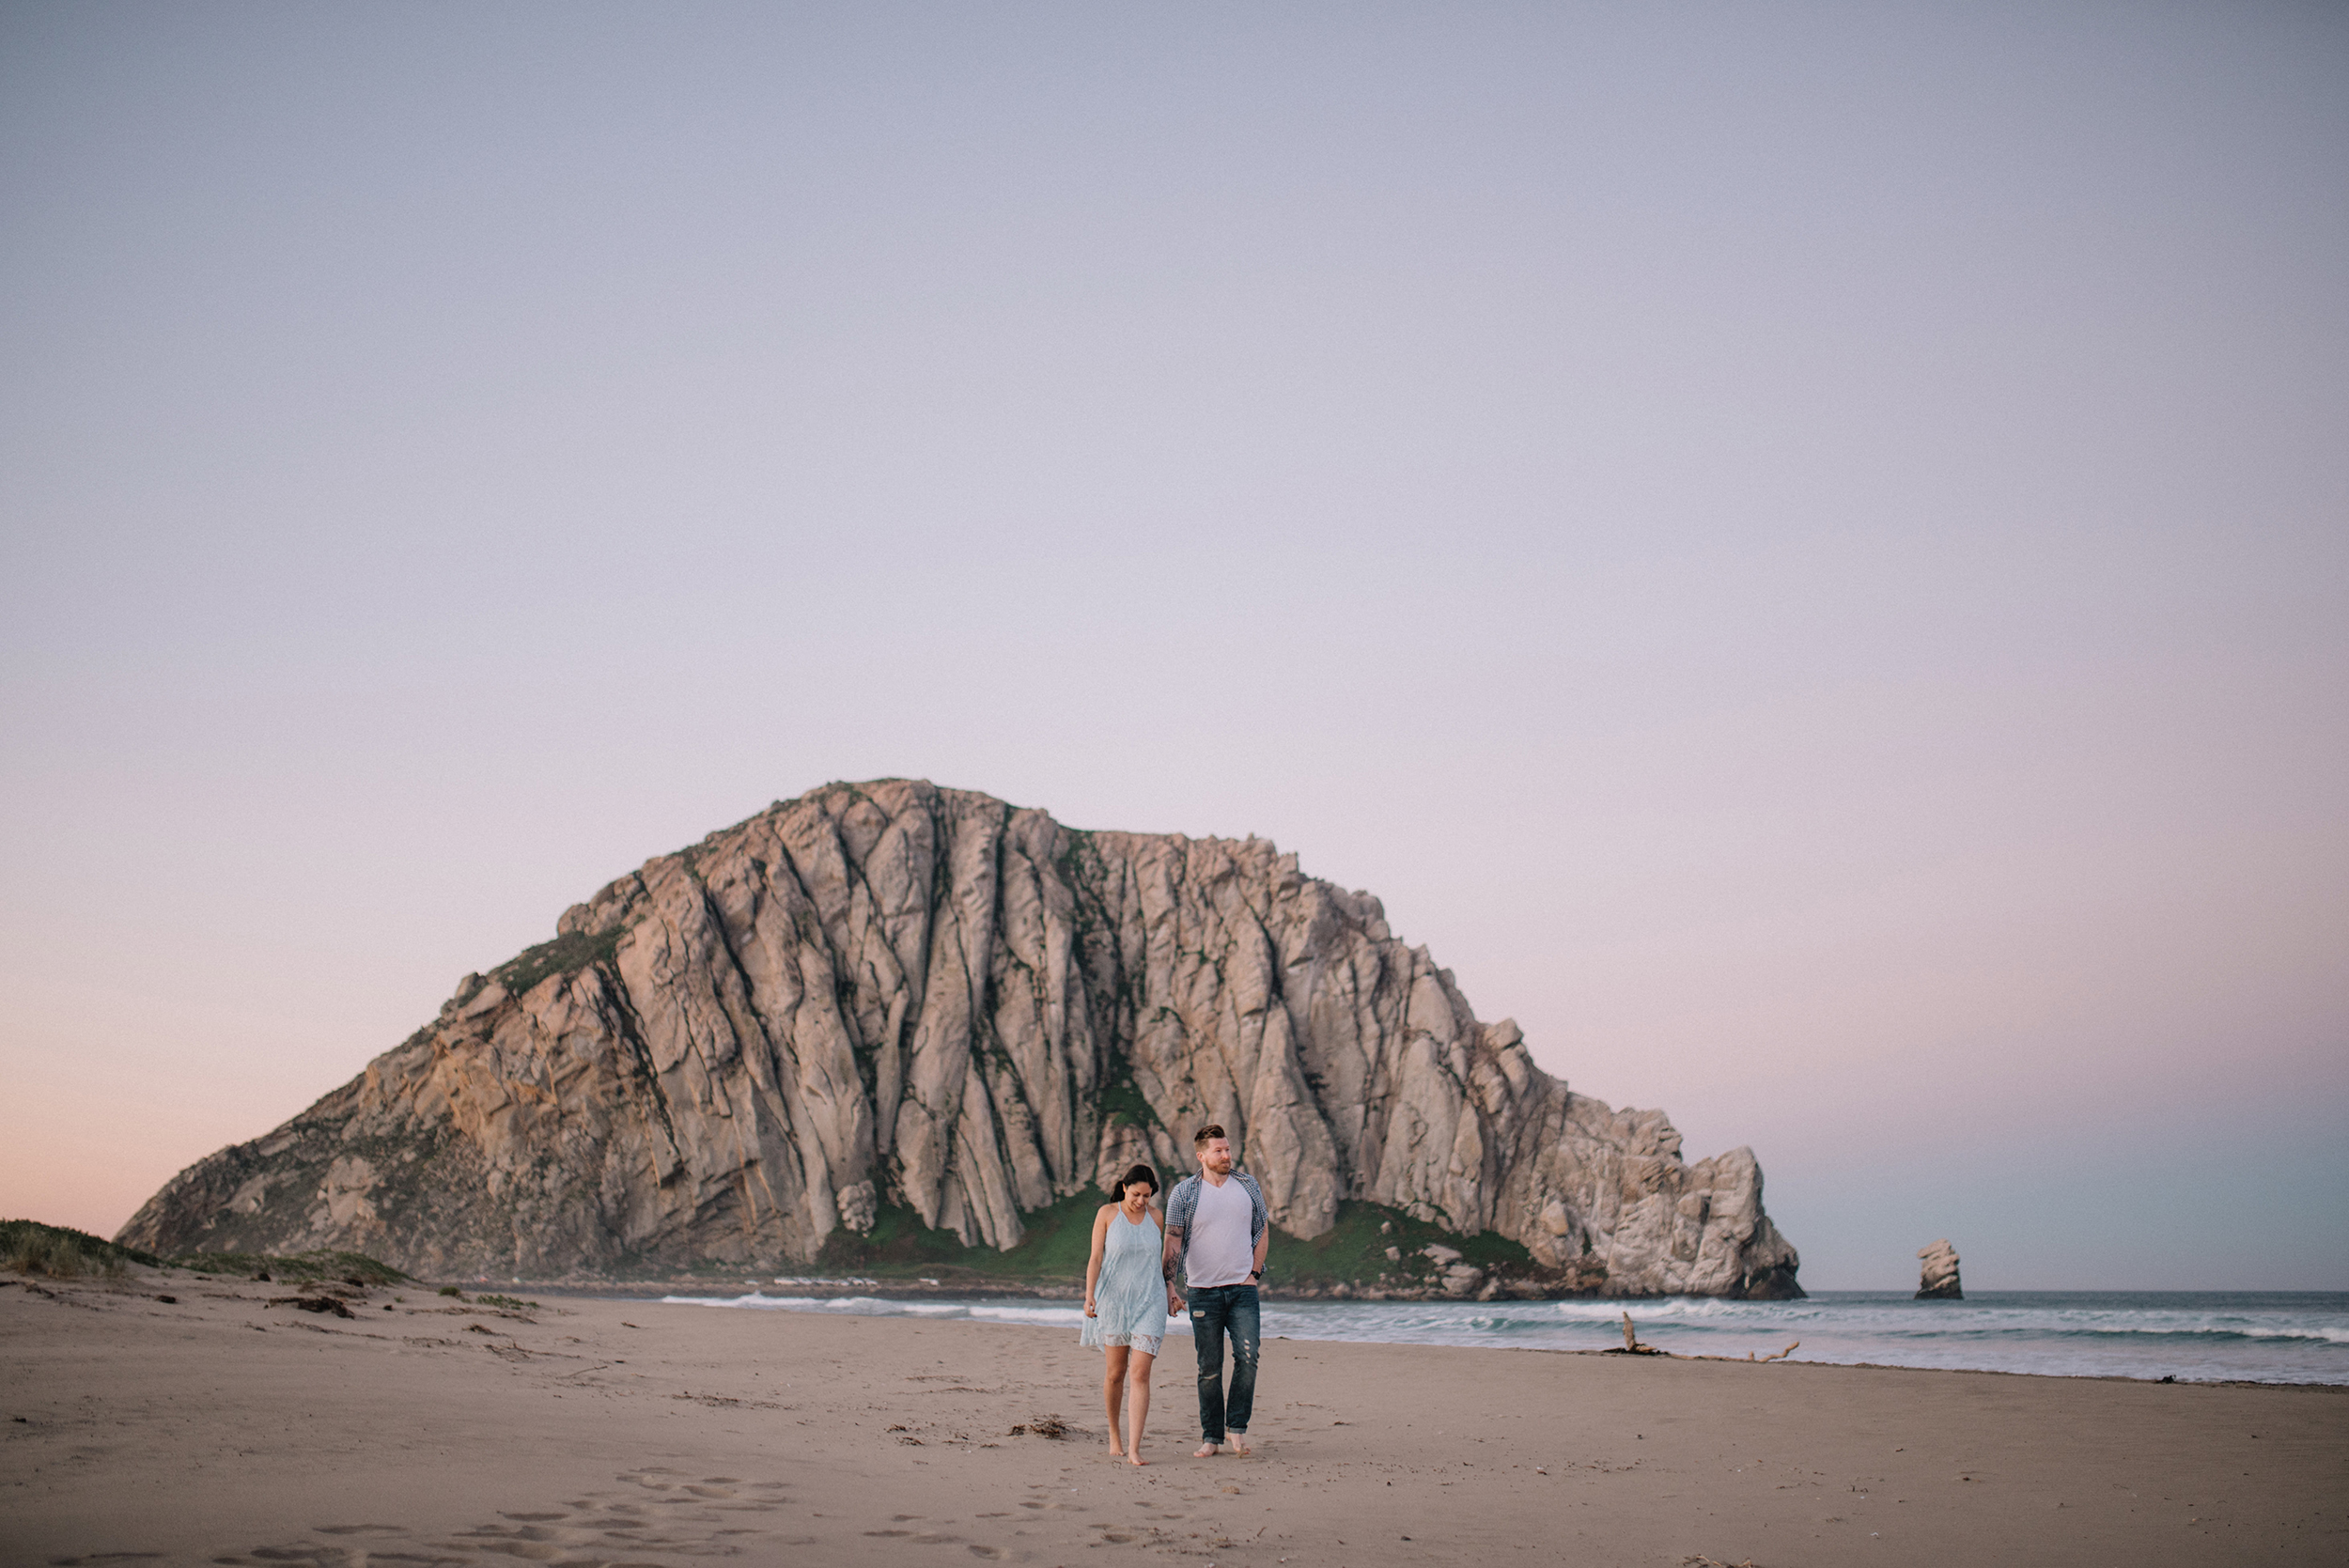 Colby-and-Jess-Adventure-Engagement-Photography-Morro-Bay-Montana-de-oro-California73.jpg